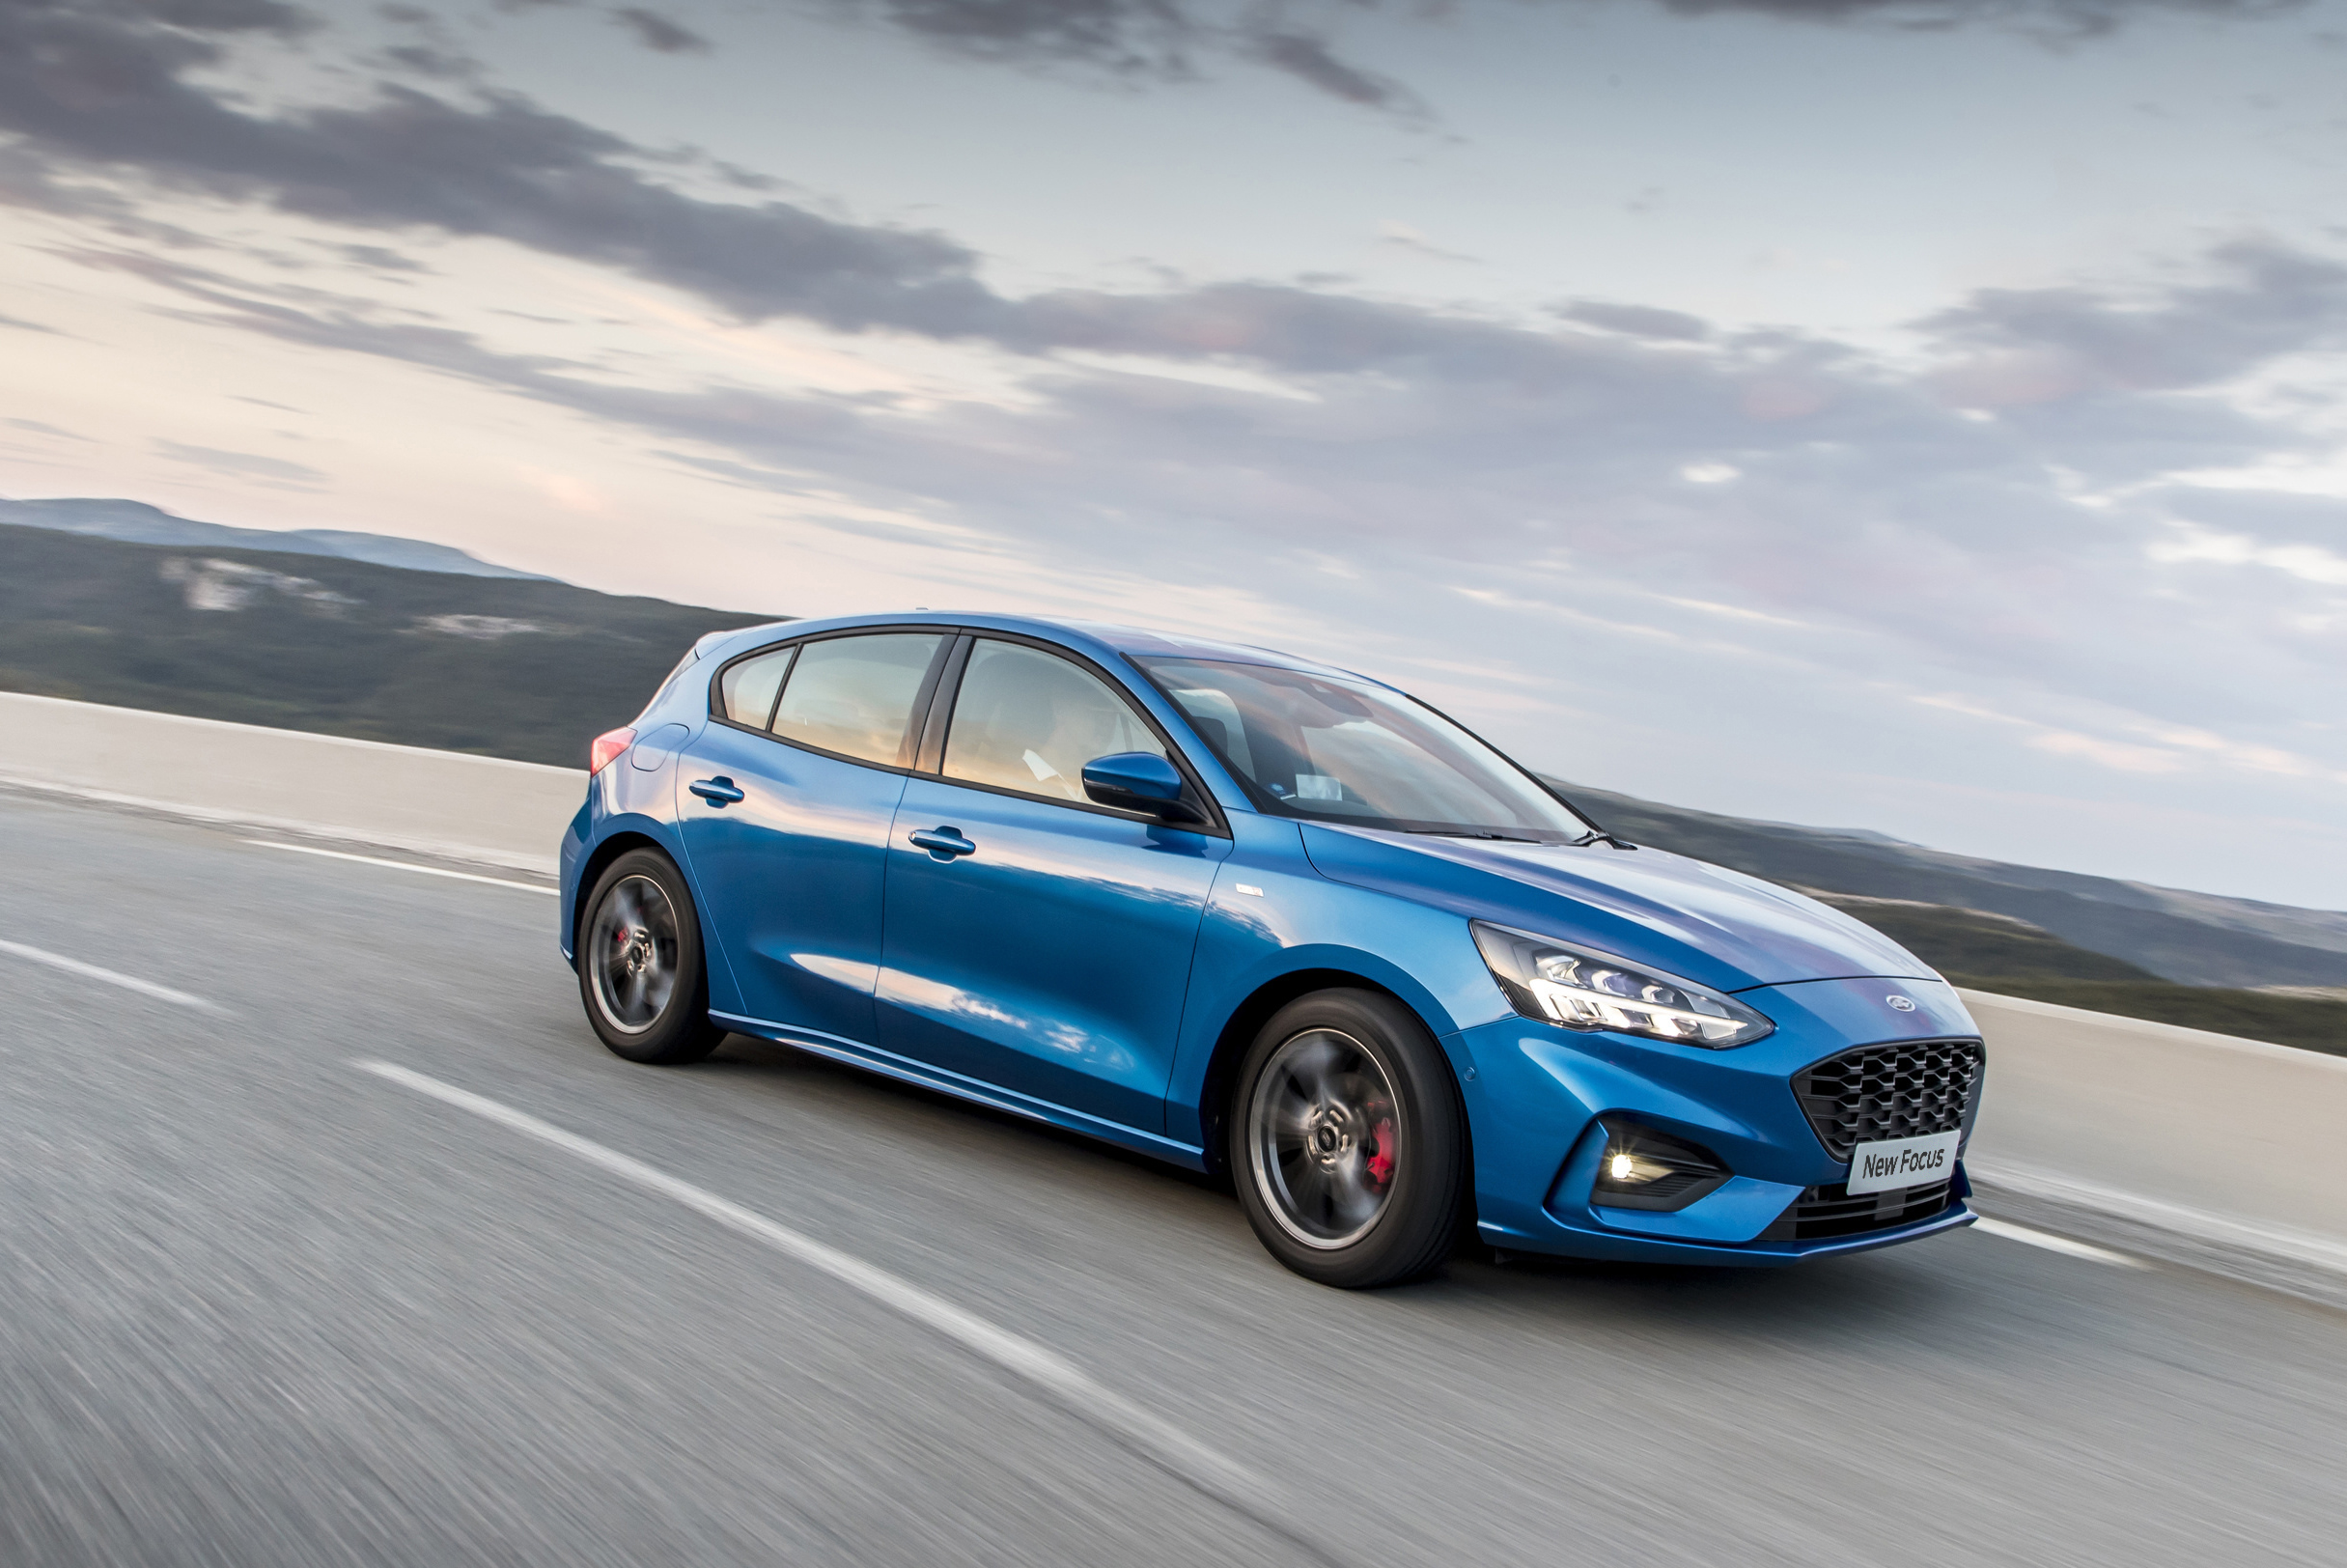 All-new innovative and dynamic Ford Focus arrives